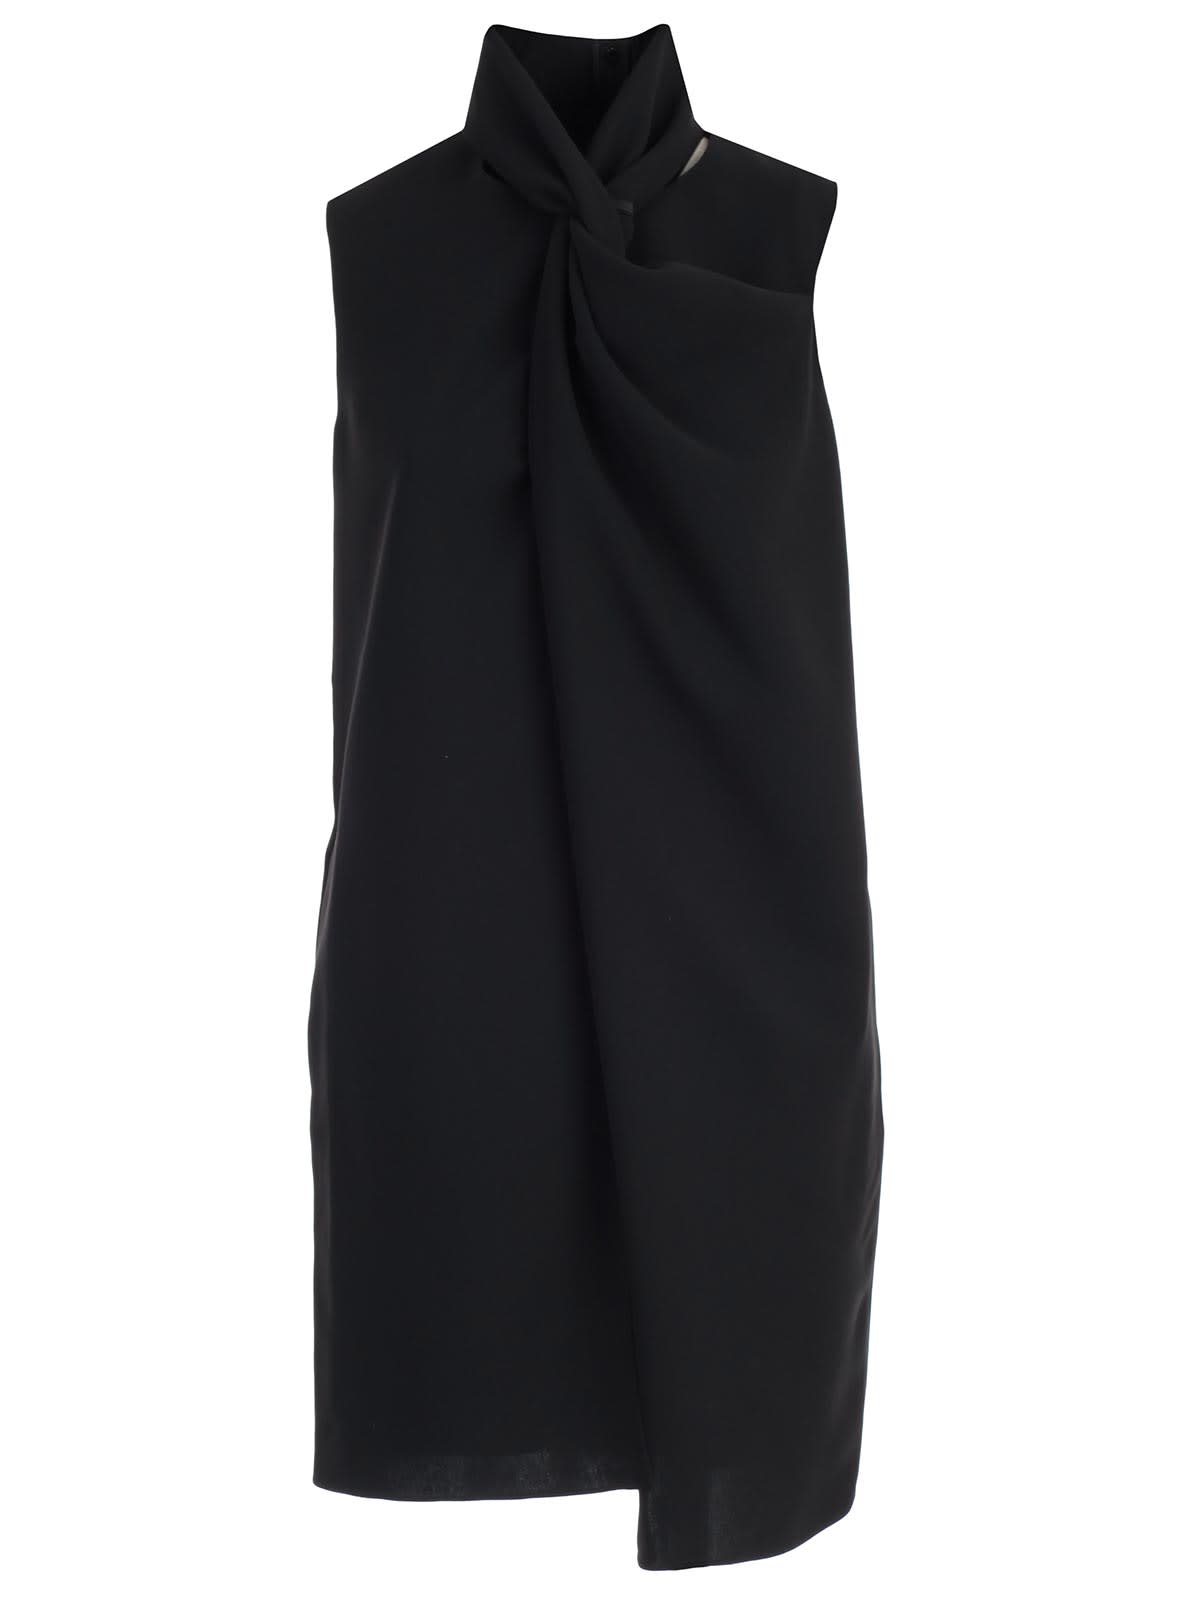 Photo of  Victoria Victoria Beckham Dress W & s Twist Front- shop Victoria Victoria Beckham  online sales